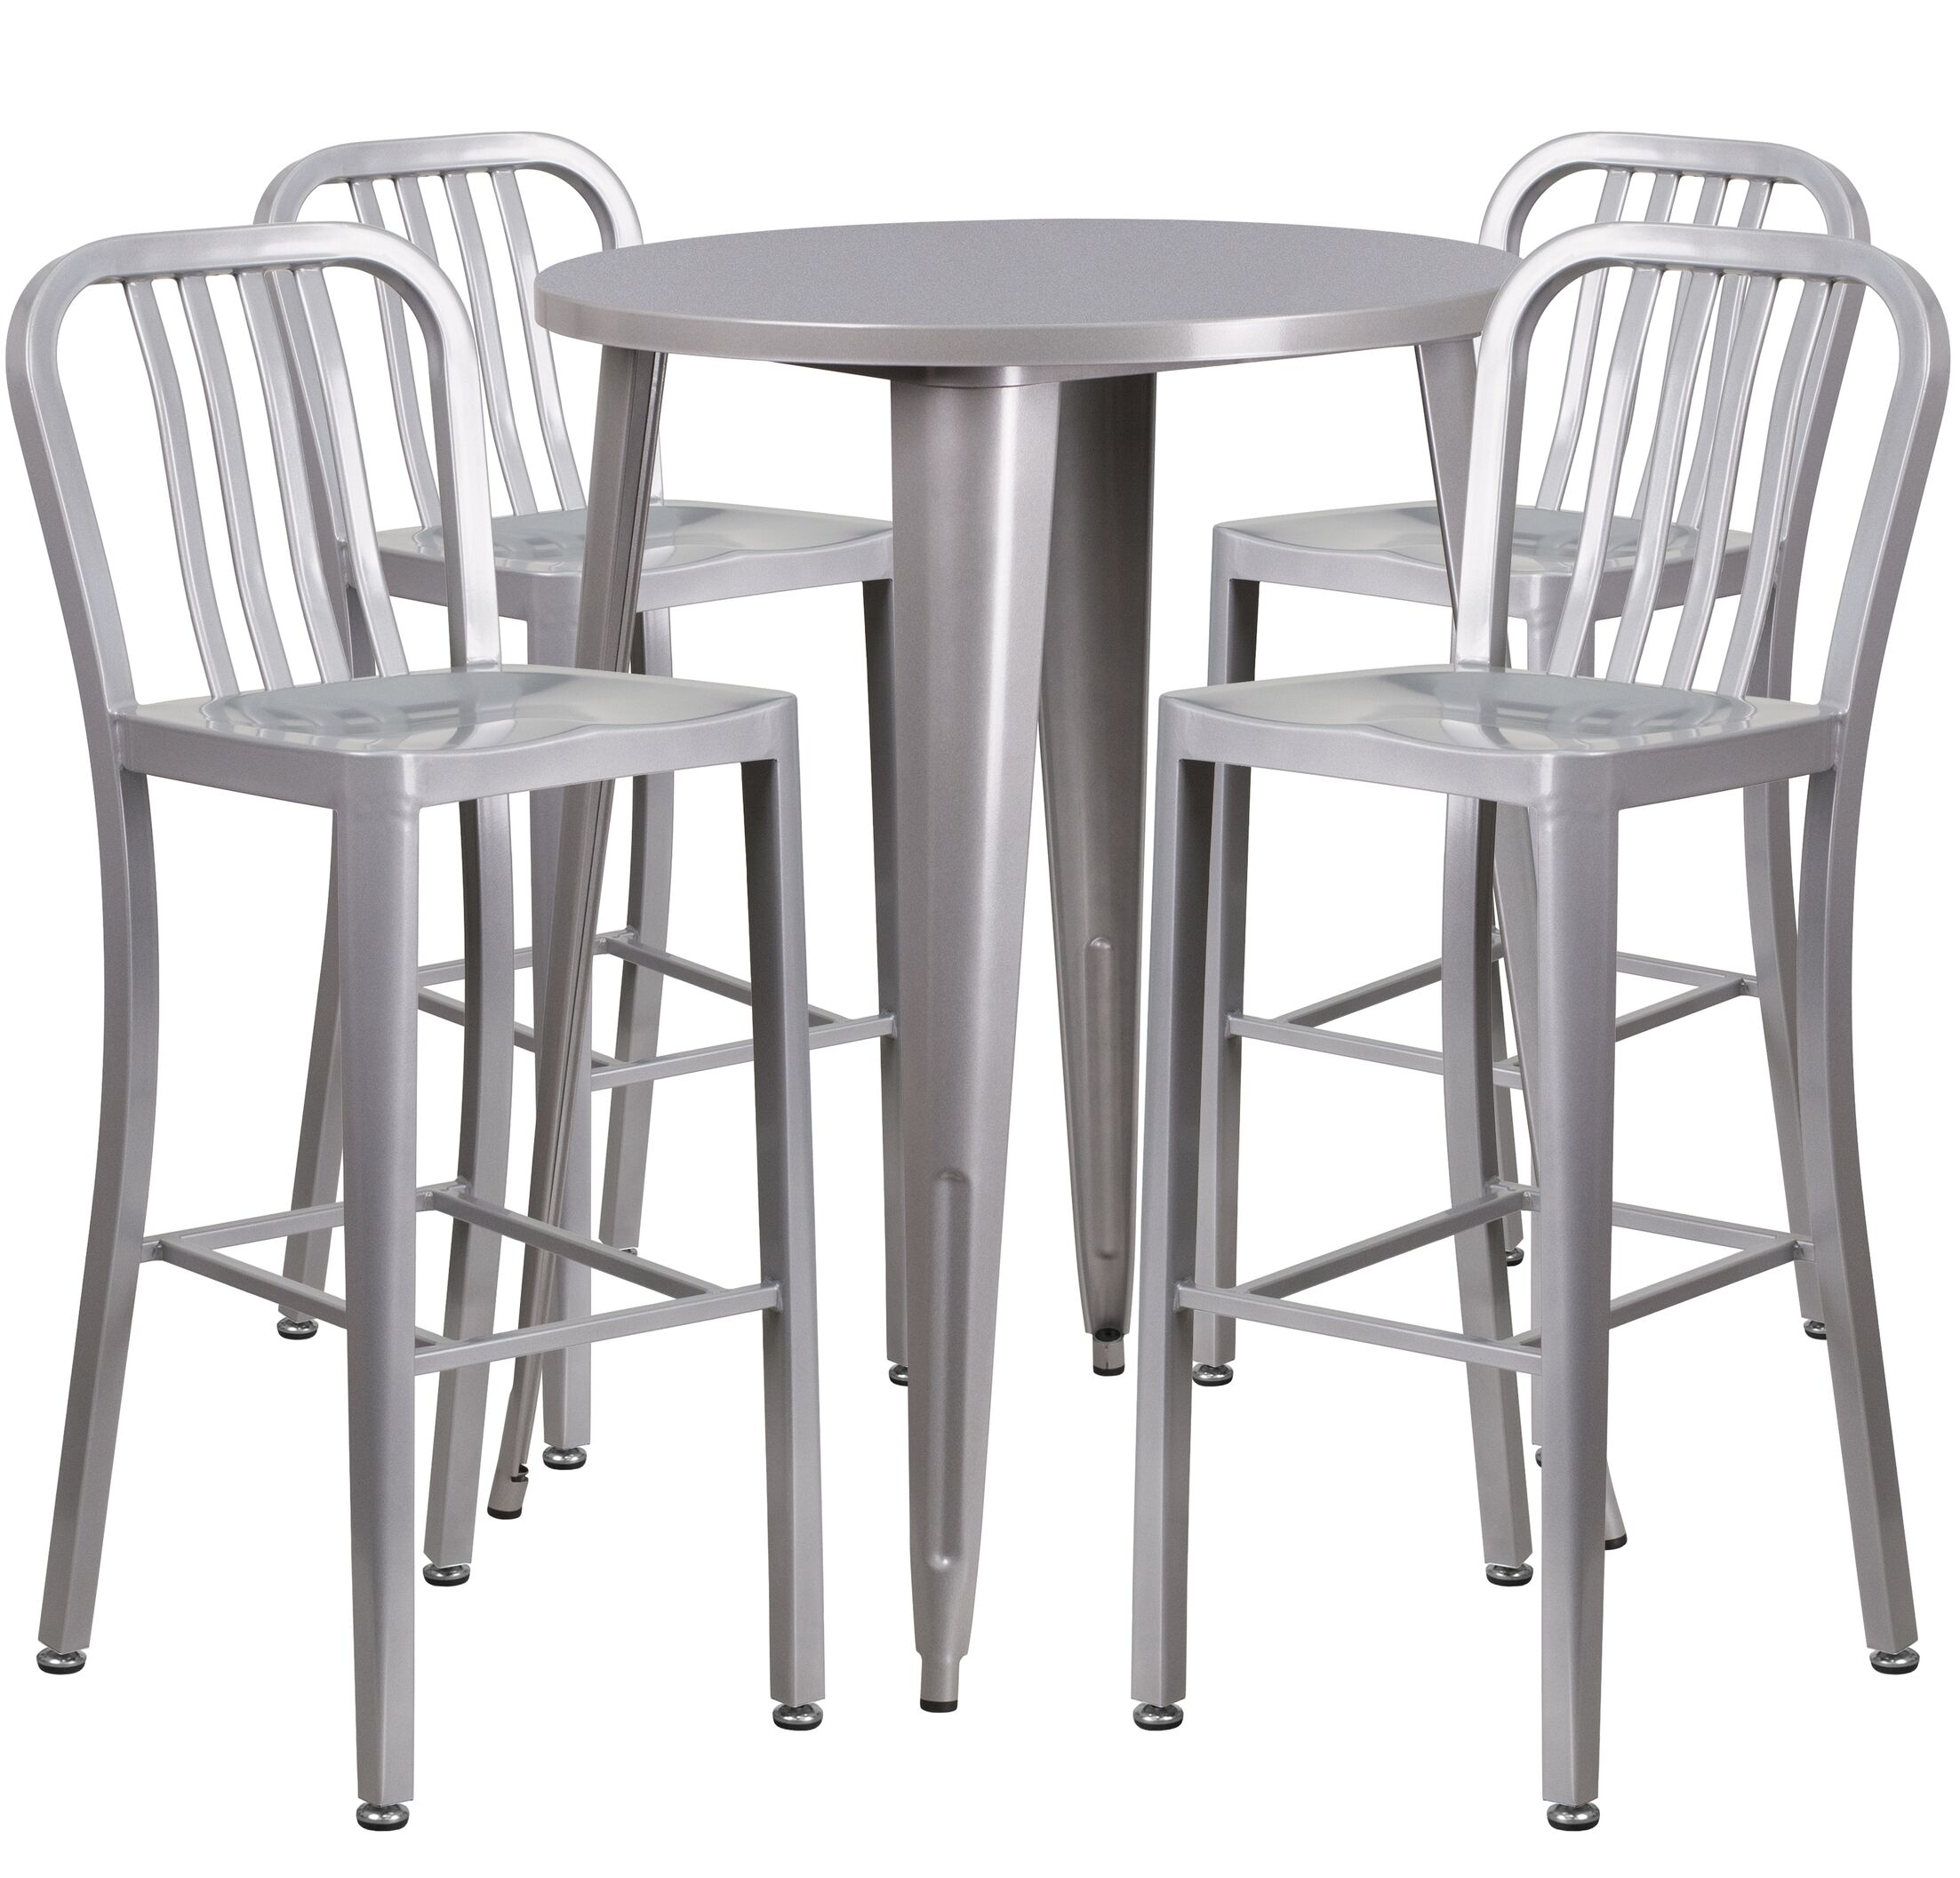 Posey 5 Piece Bar Height Dining Set Finish: Silver